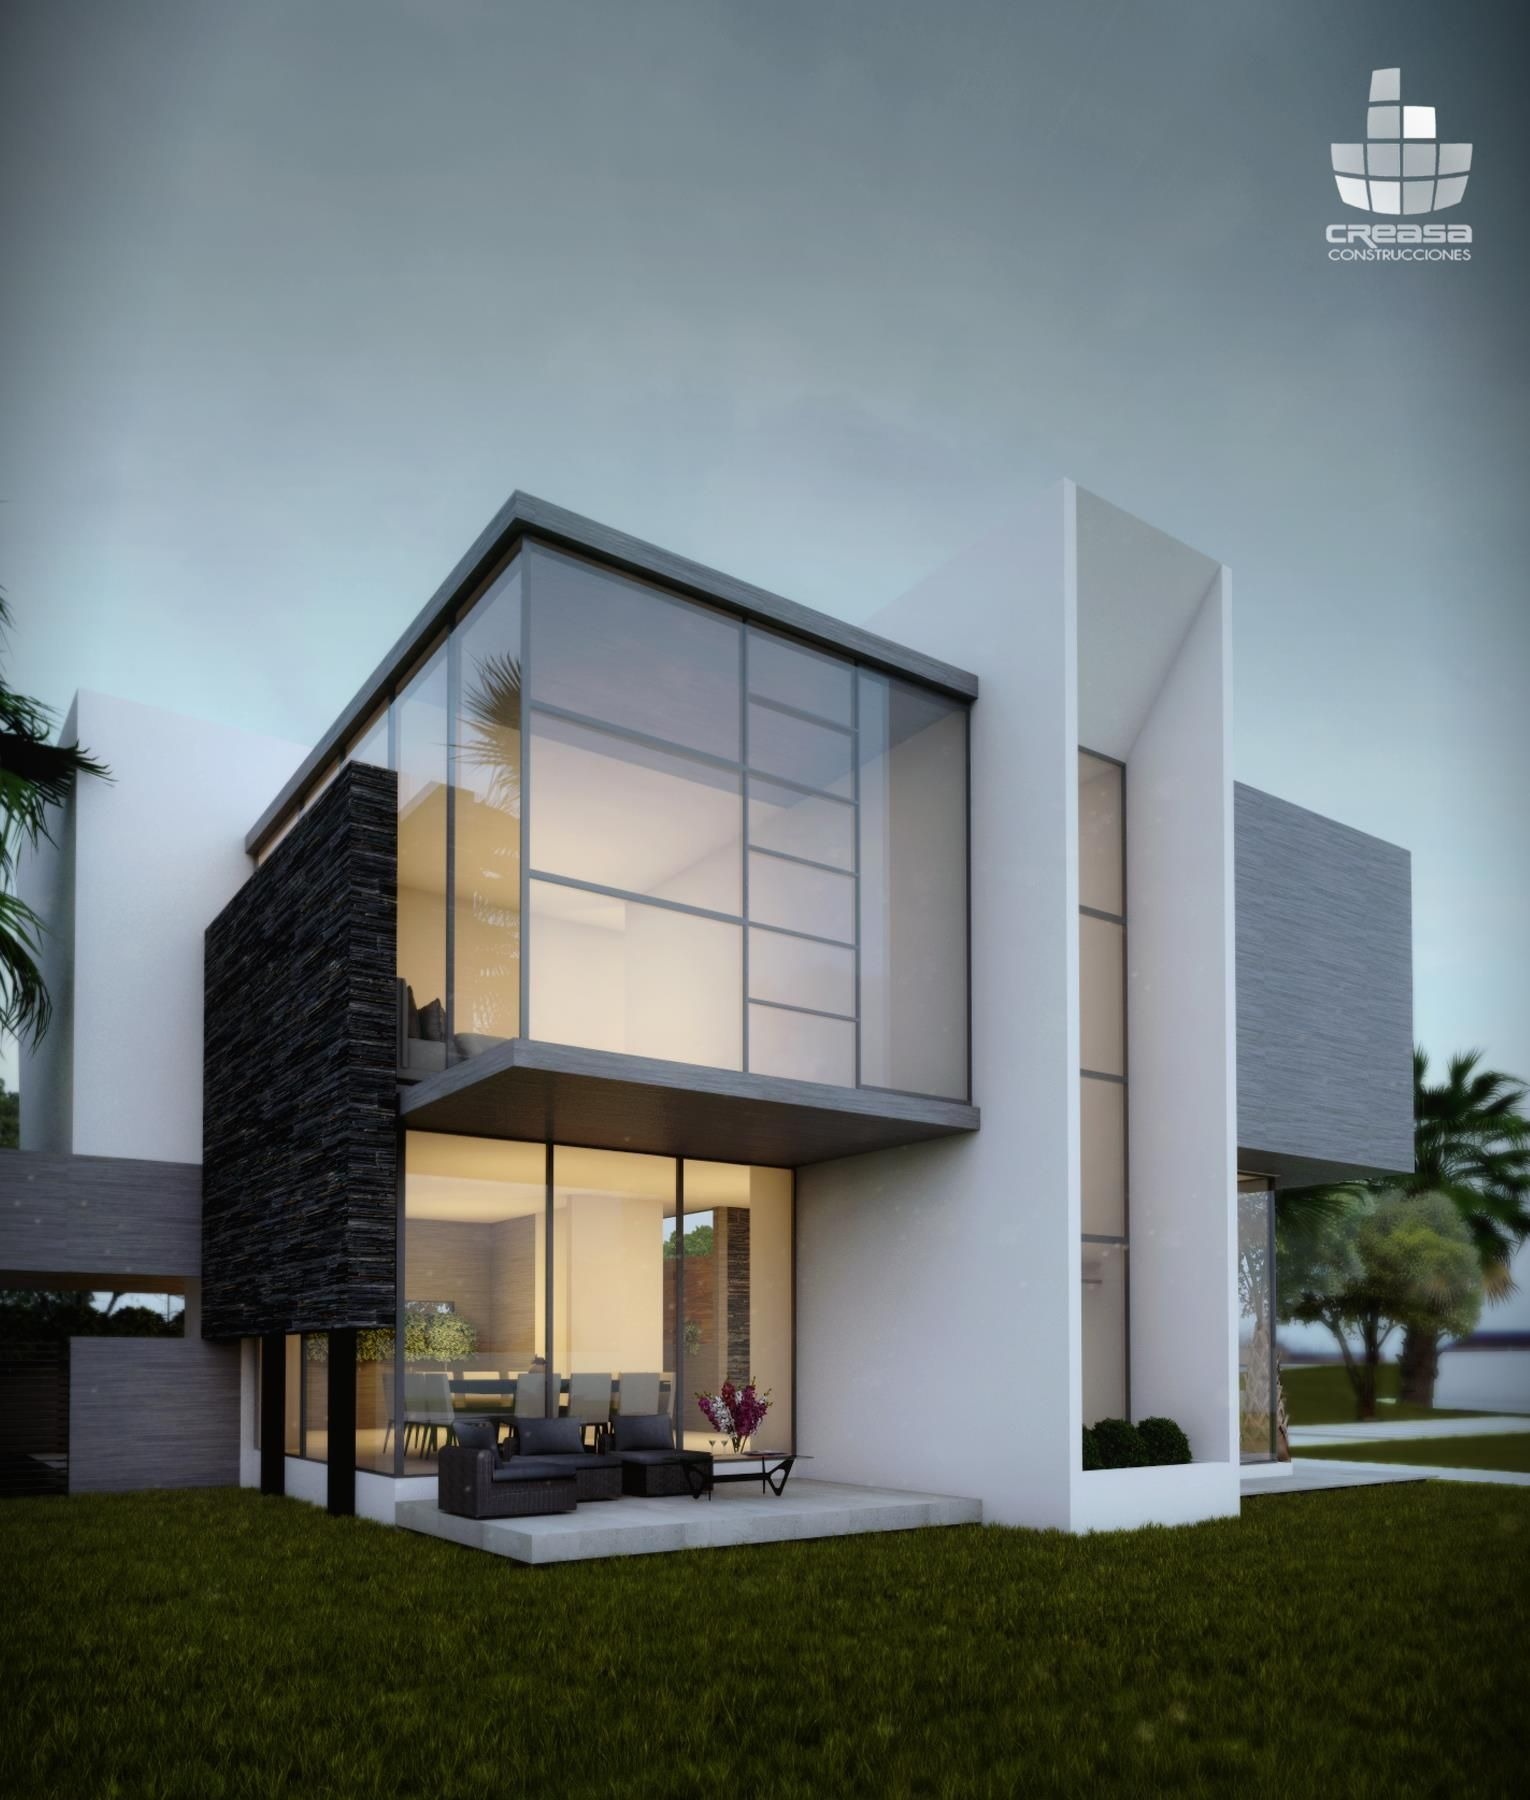 Creasa modern architecture pinterest villas house for Modern house villa design